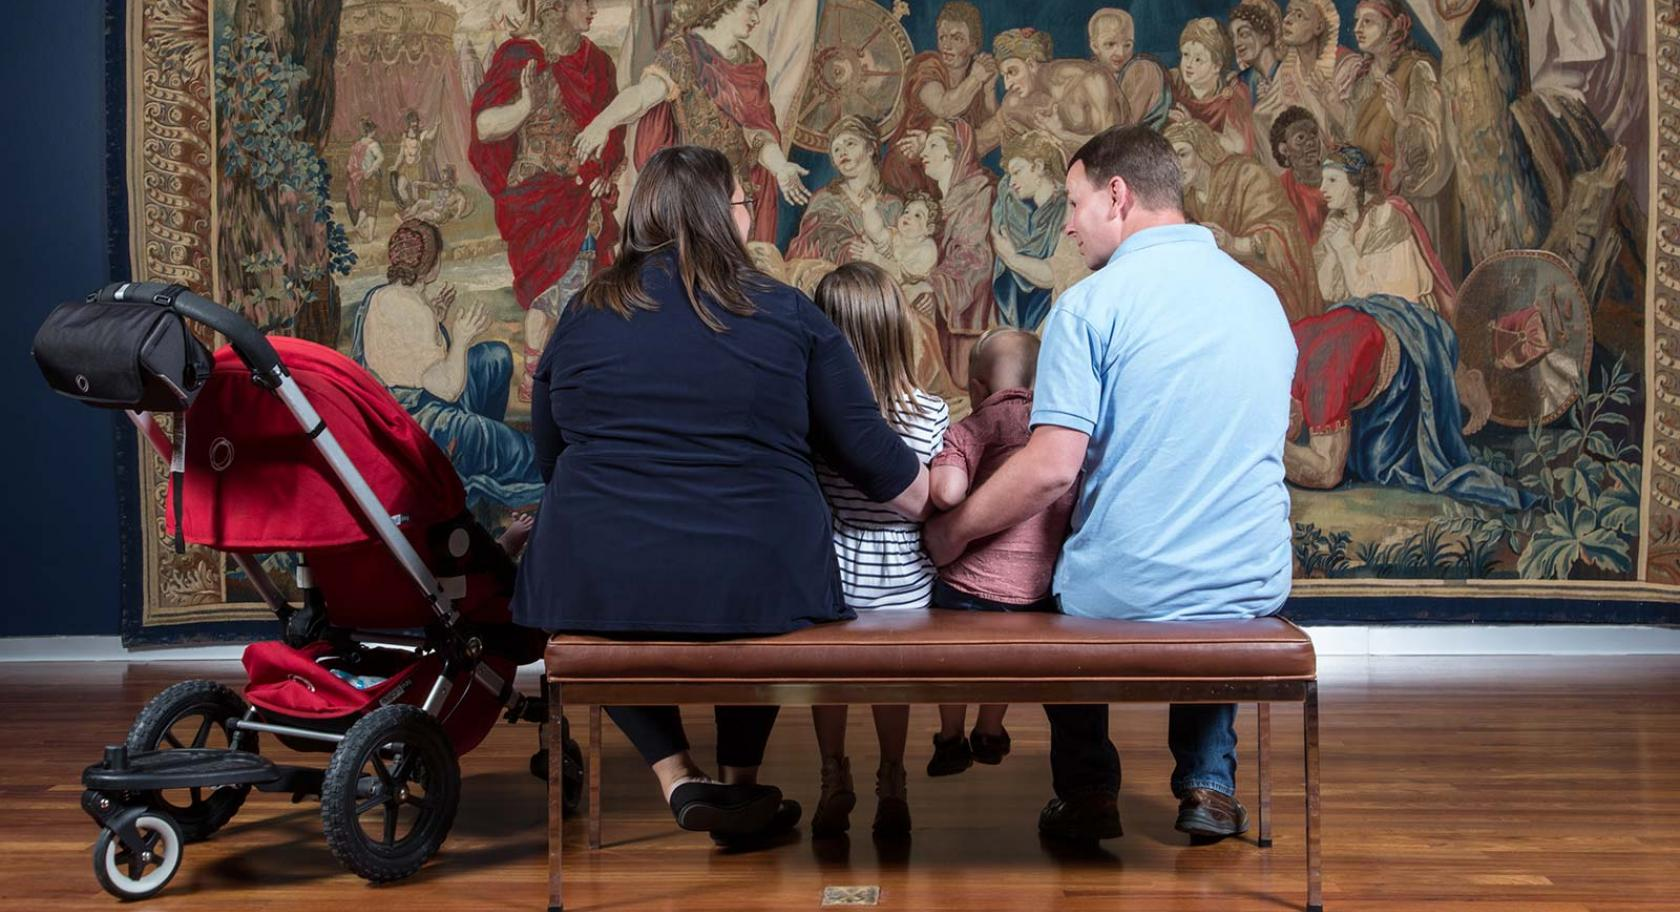 Family viewing a work of art together.